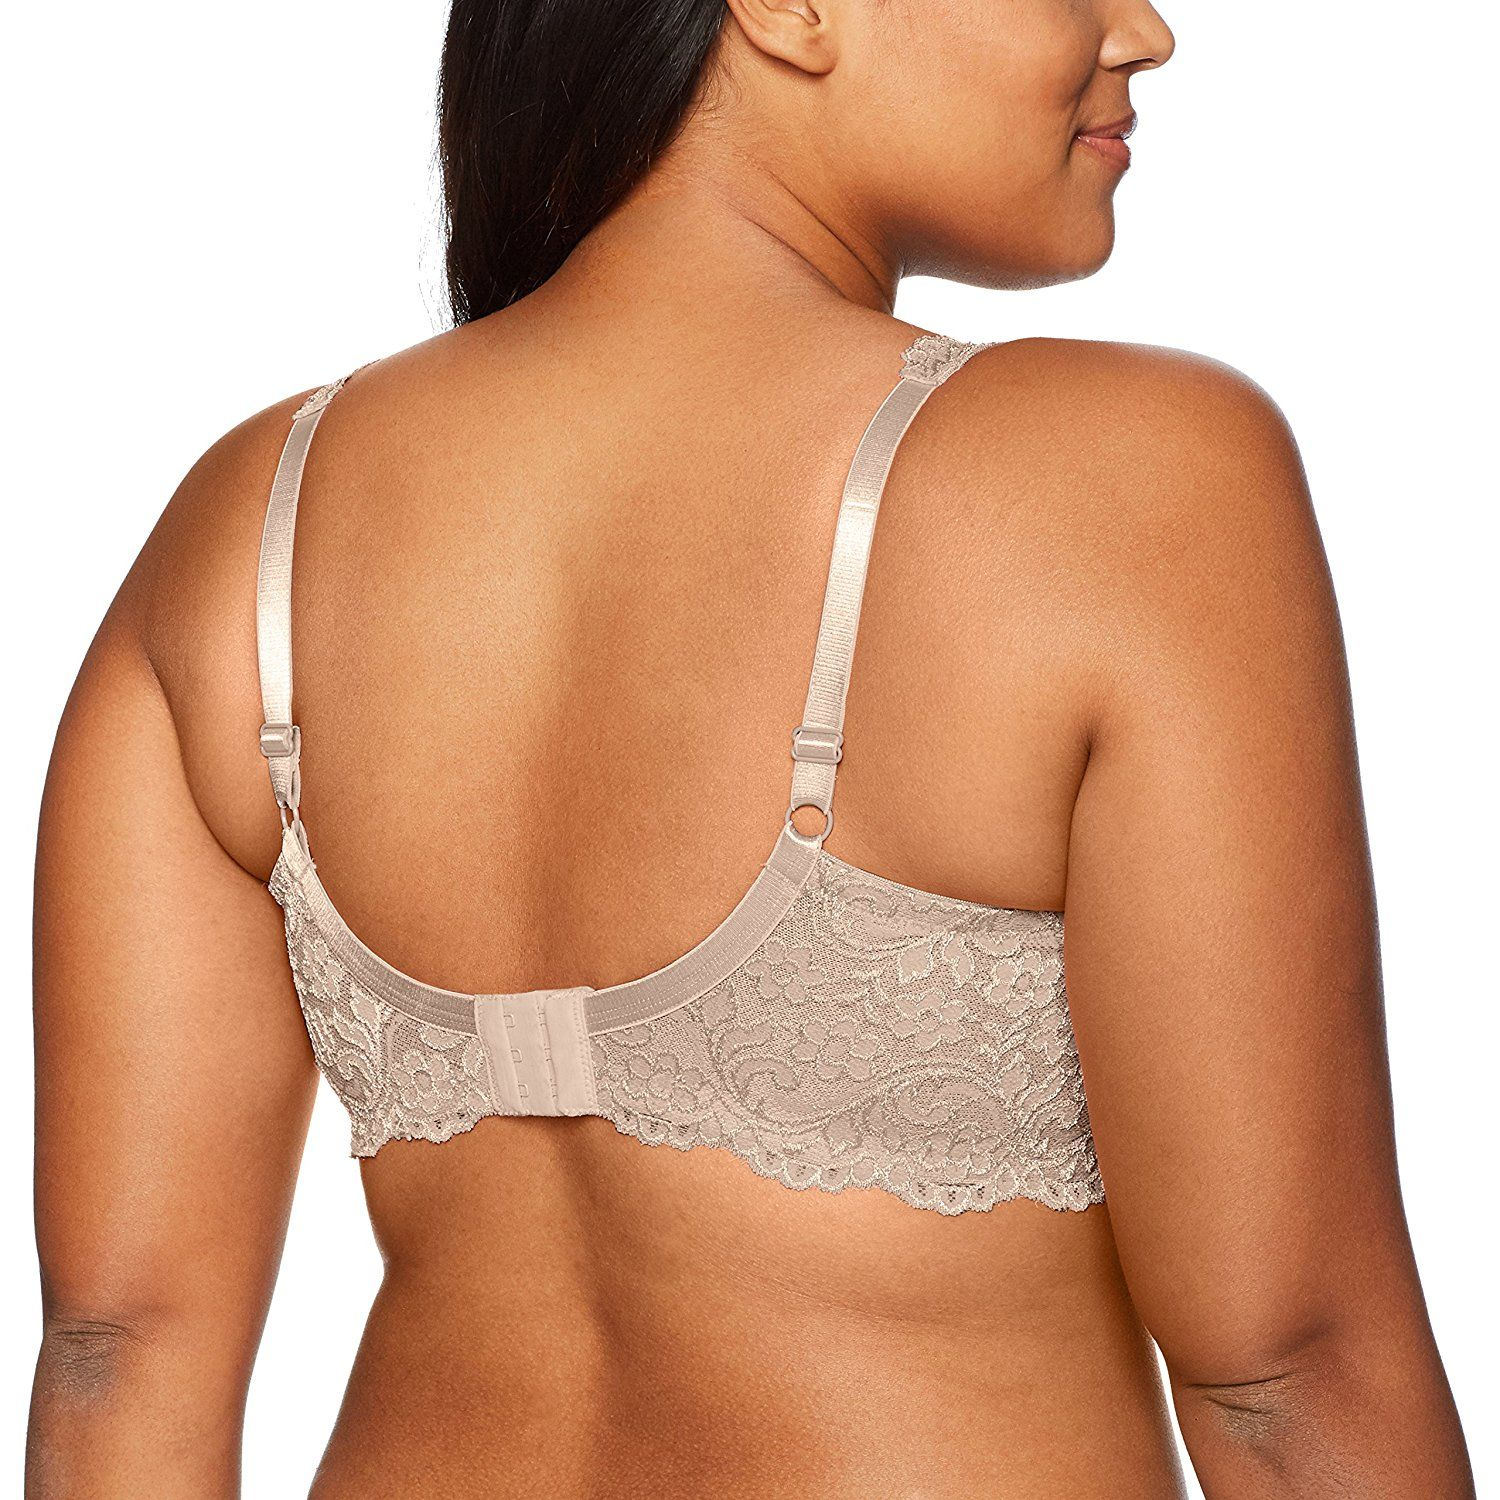 d896e9835d Smart and Sexy Women s Plus Size Curvy Signature Lace Unlined Underwire Bra  with Added Support     Click image to review more details.